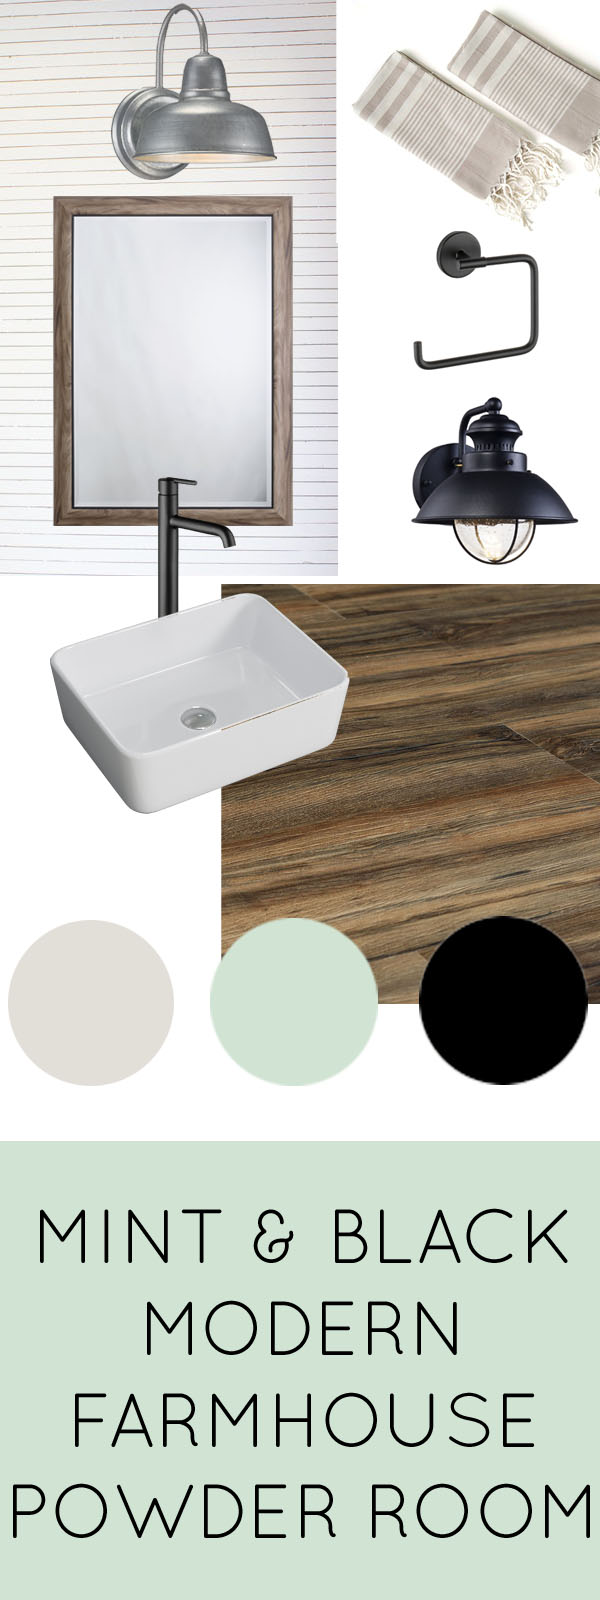 Check out these ideas for a modern farmhouse powder room with mint, black, and wood tones. Love the idea of a skinnylap backsplash!